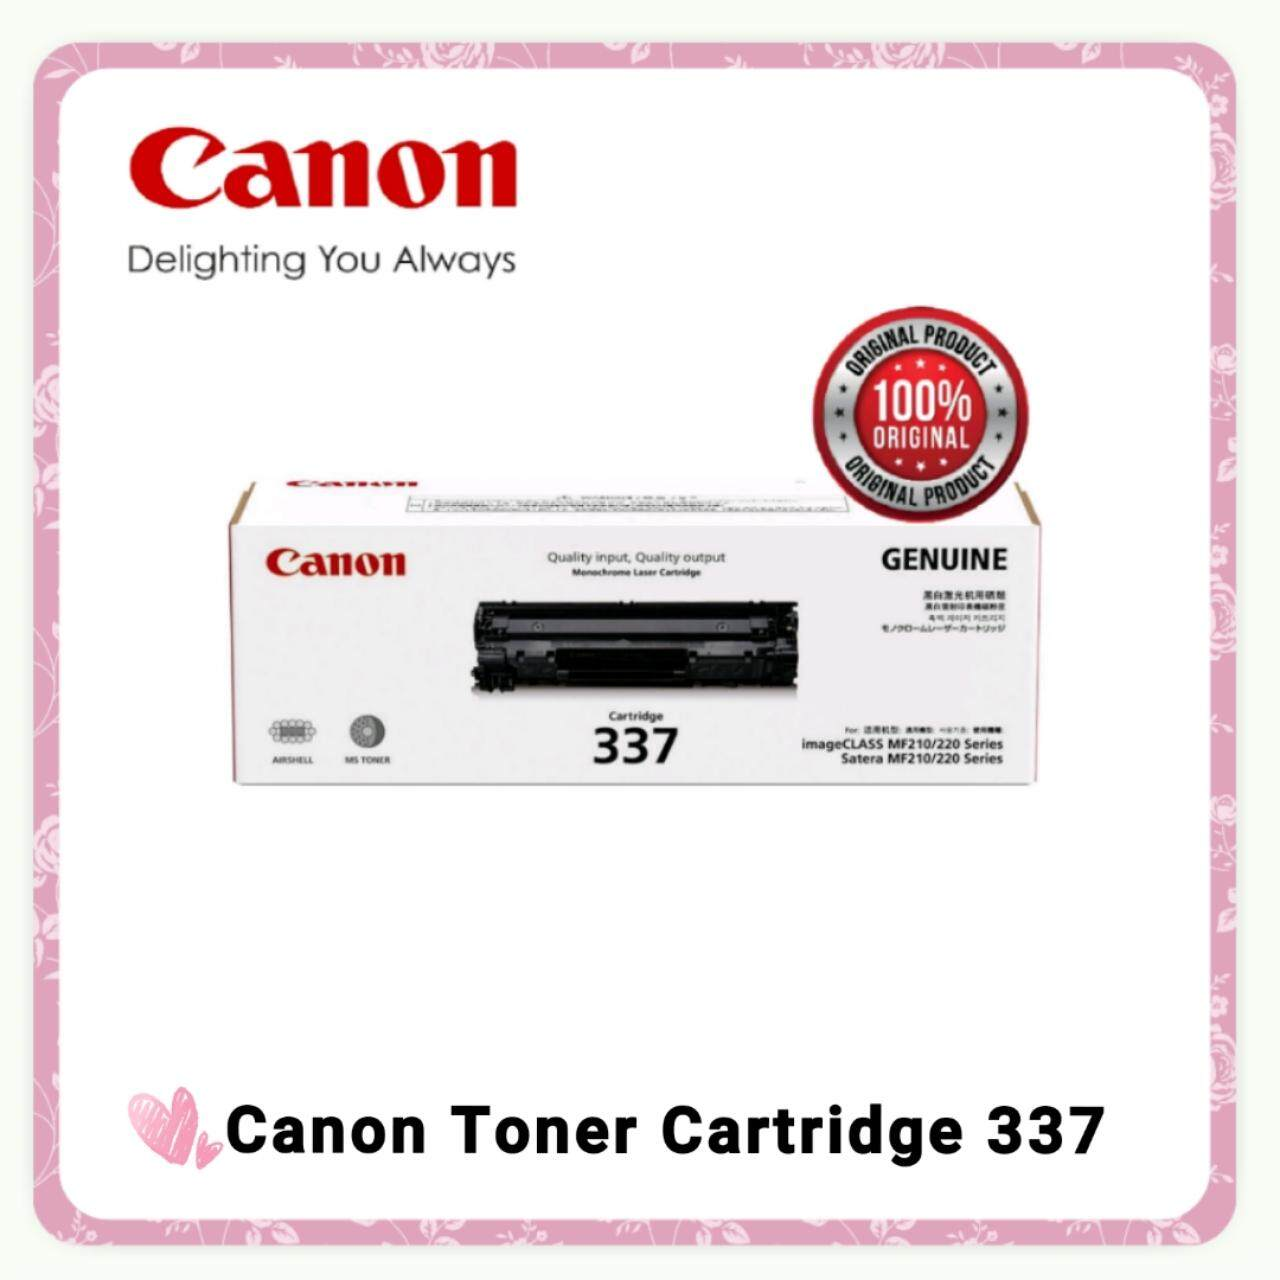 Canon Ink Price In Malaysia Best Lazada Tinta Cl 811 Original 100 Genuine Cartridge 337 Black